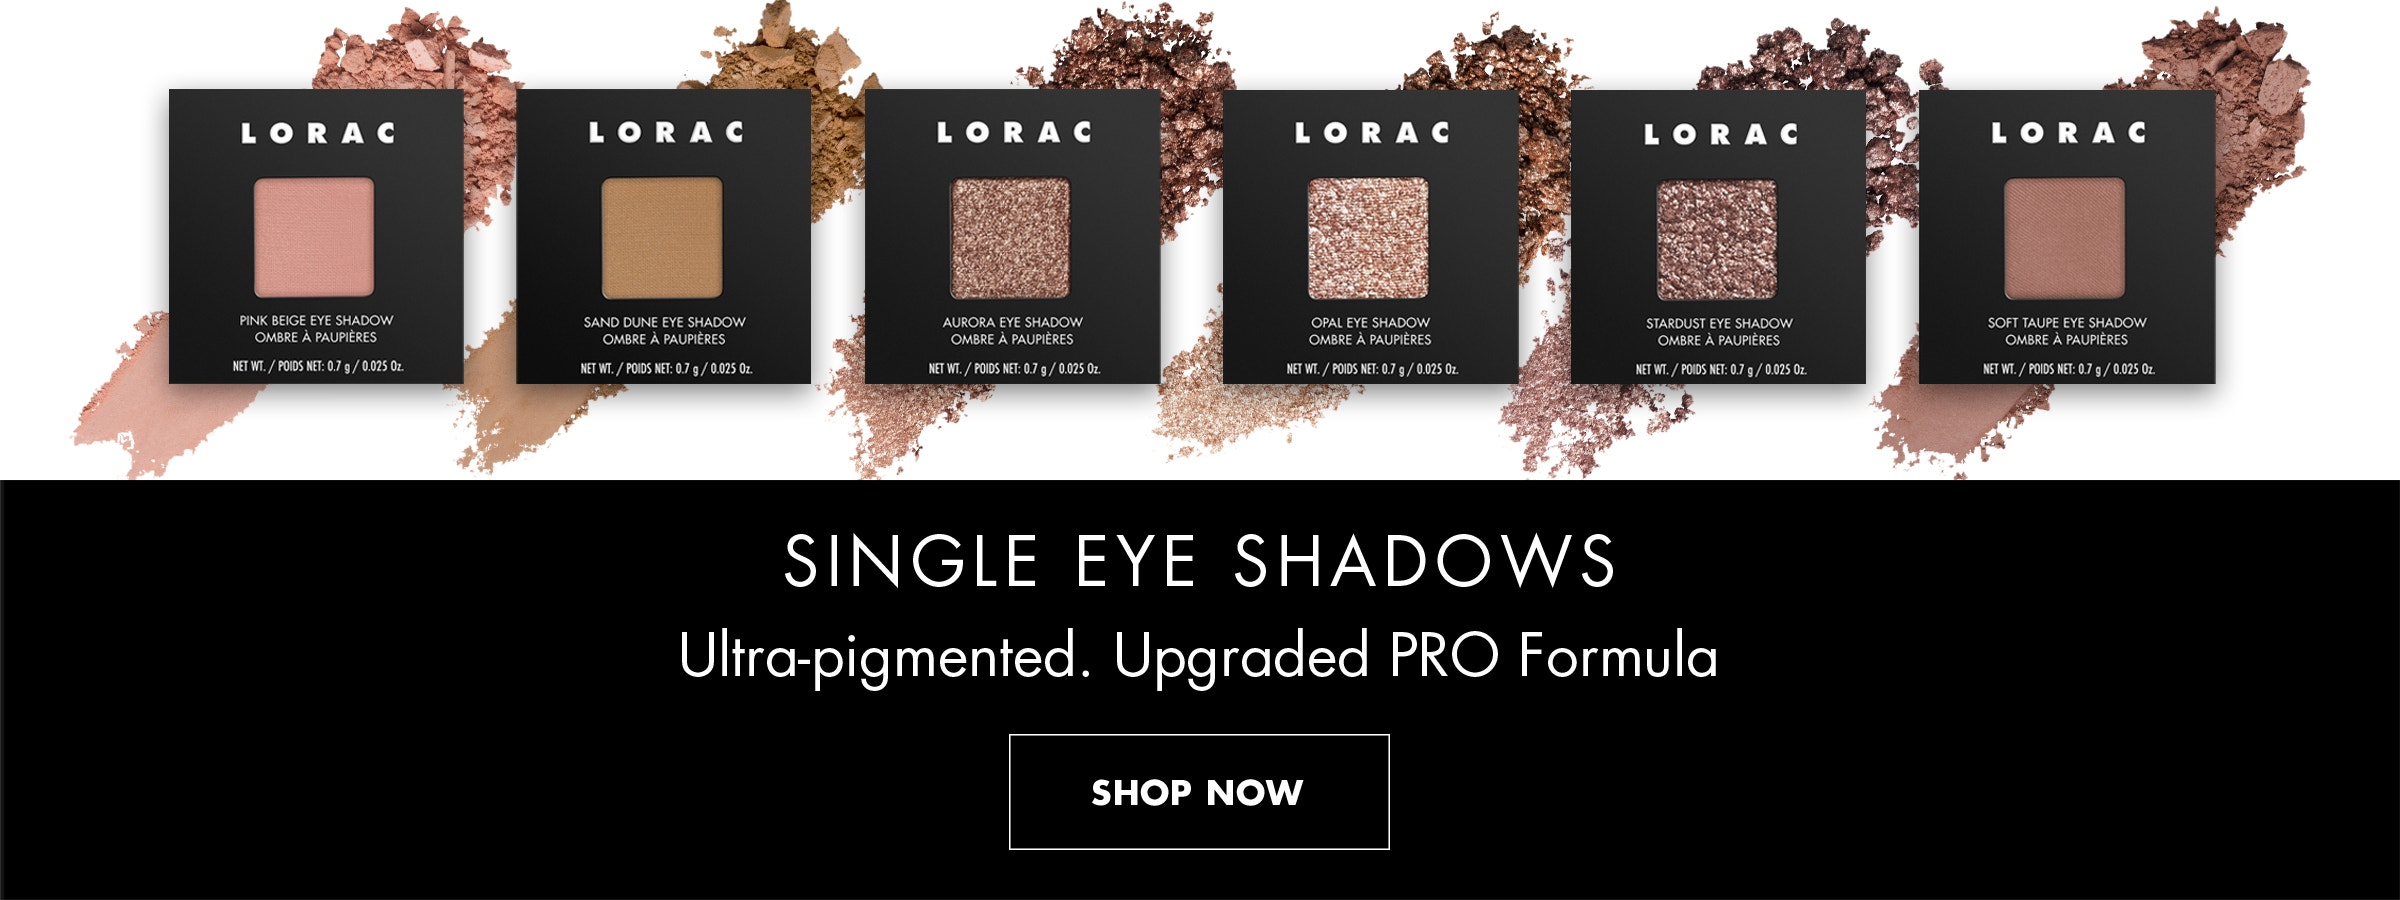 LORAC   SINGLE EYE SHADOWS ULTRA-PIGMENTED. UPGRADED PRO FORMULA   PRODUCTS FRONT FACING OVER SWATCHES ON A WHITE BACKGROUND   SHOP NOW